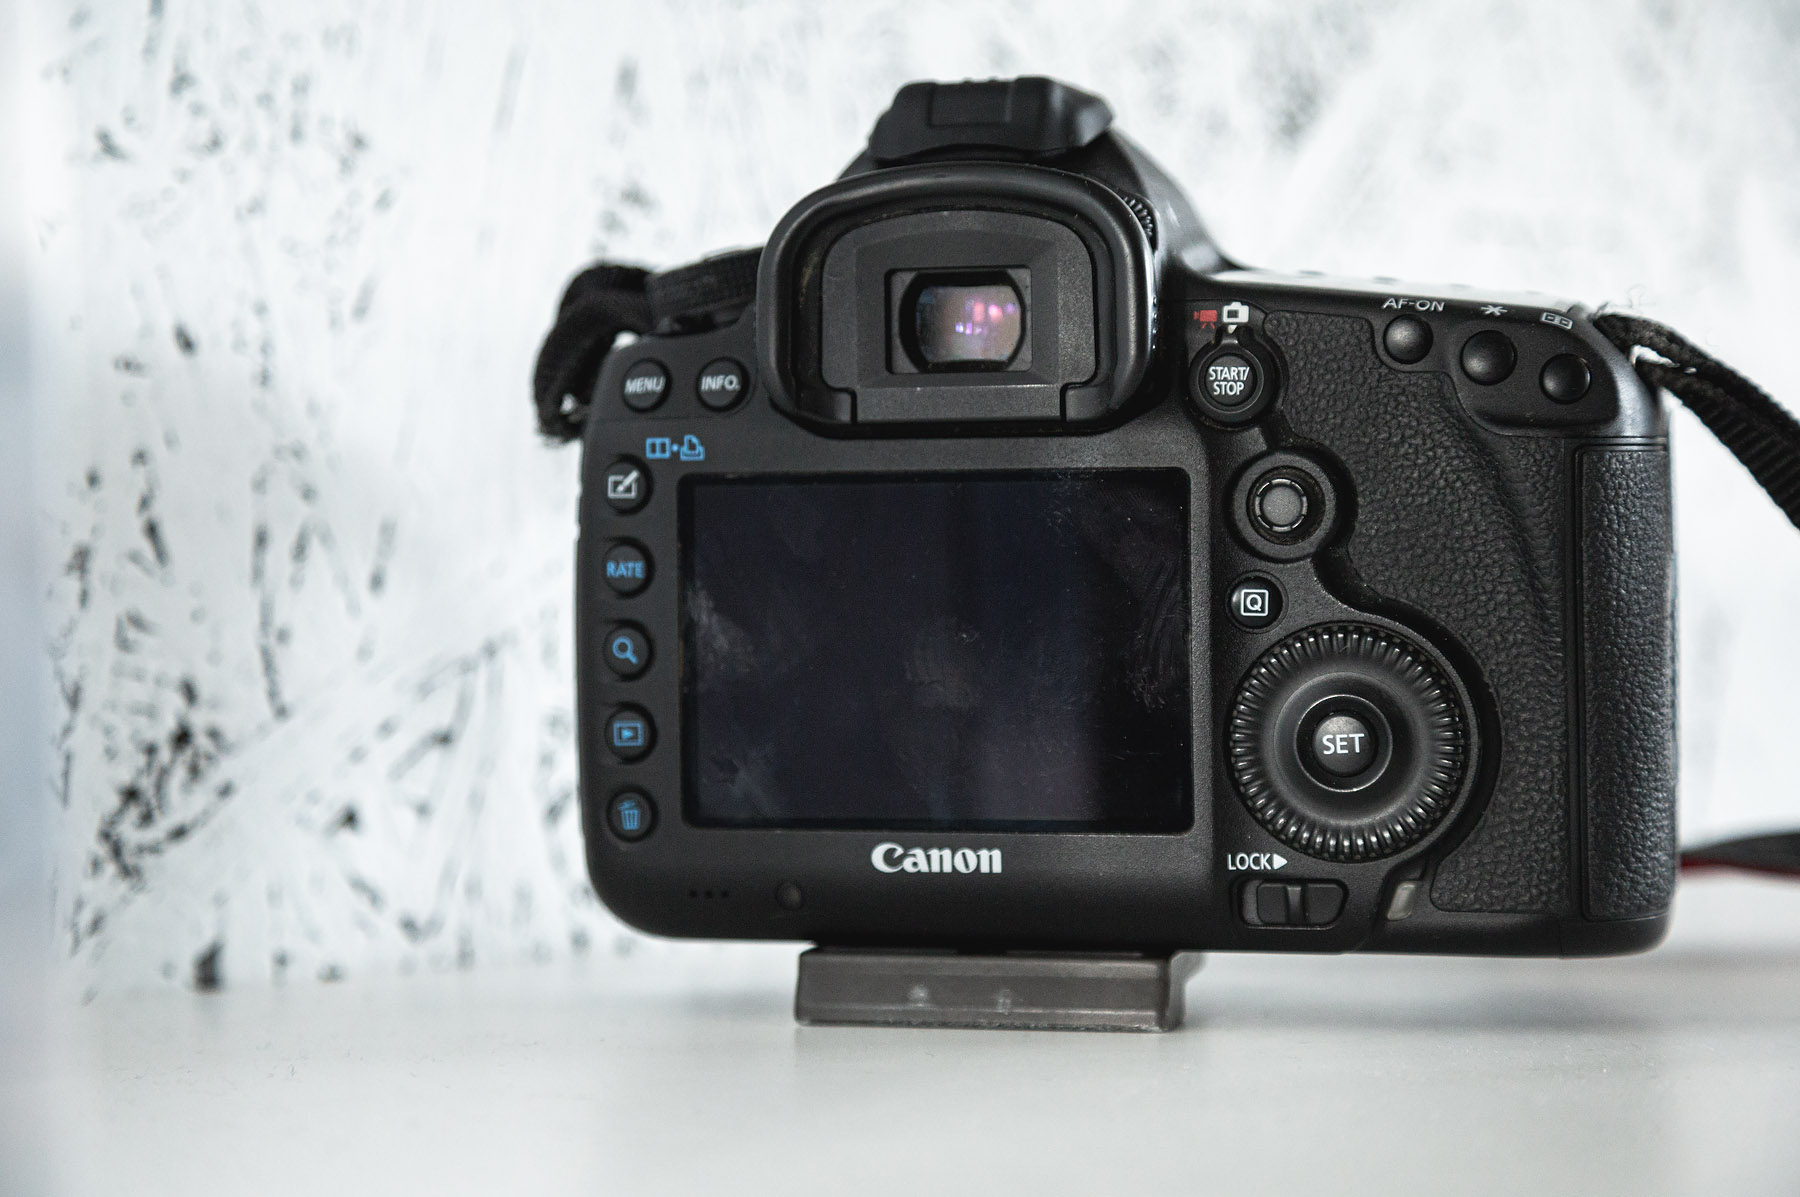 Back view, canon eos 5d markIII, aandachtspunten tweedehands camera